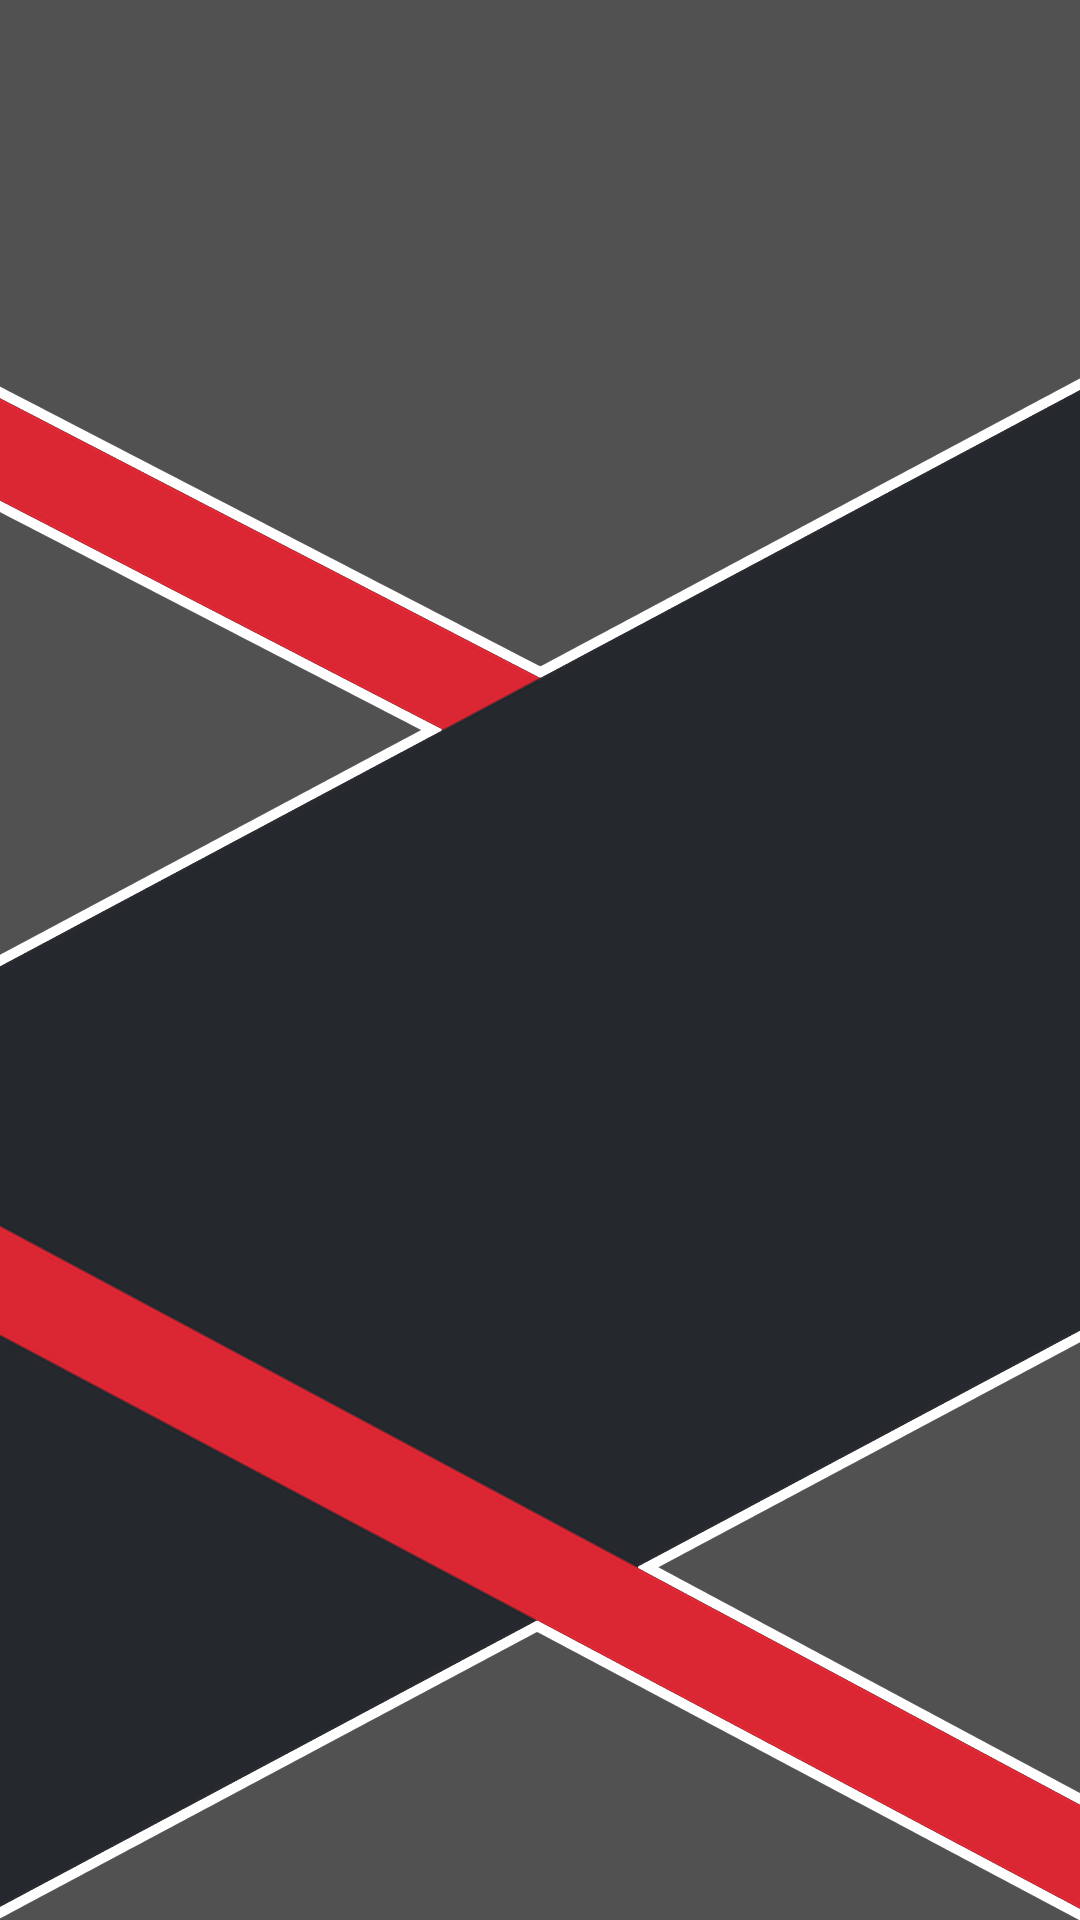 Mkbhd Iphone Wallpaper Official Mkbhd Wallpapers For Iphone Ipad Amp Desktop